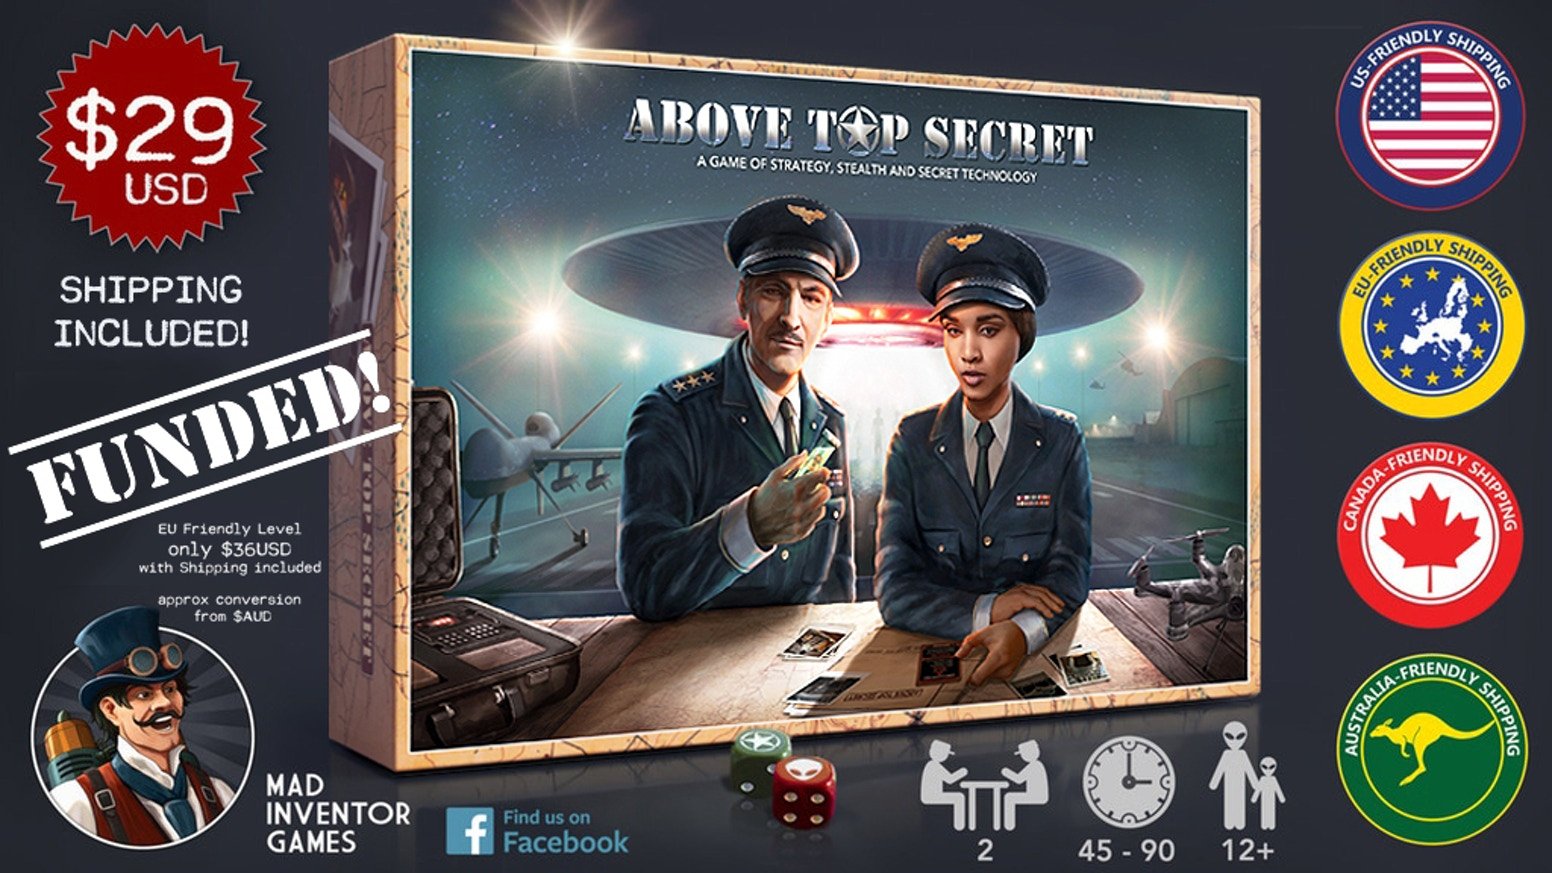 ABOVE TOP SECRET is a turn-based strategic card game featuring stealth and secret technology as your defense systems.